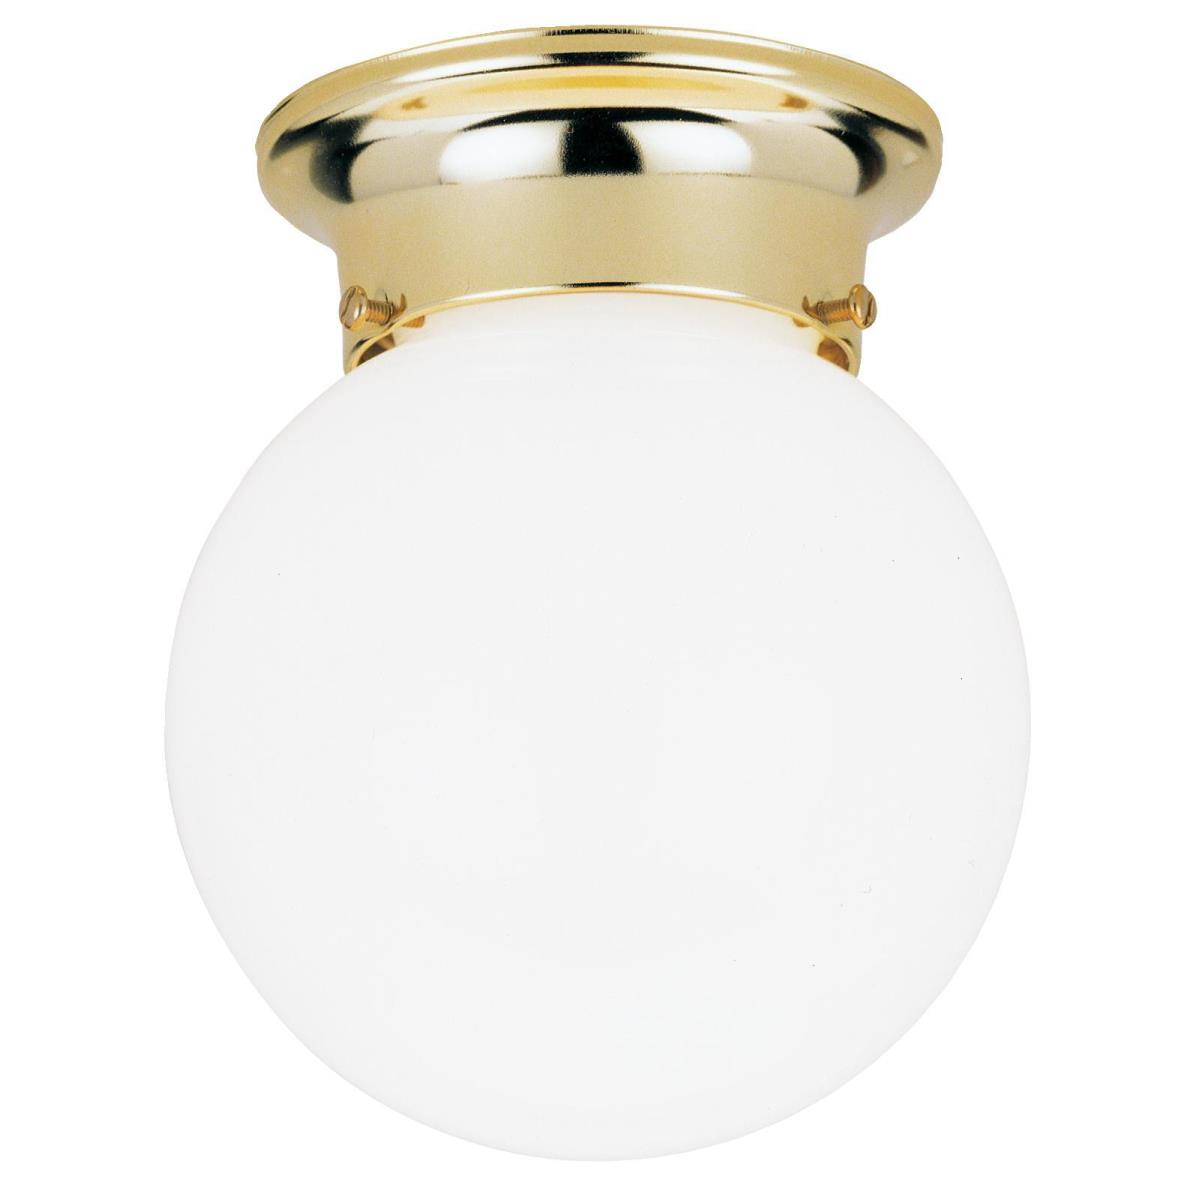 1 Light Flush Ceiling Fixture Polished Brass Finish with White Glass Globe